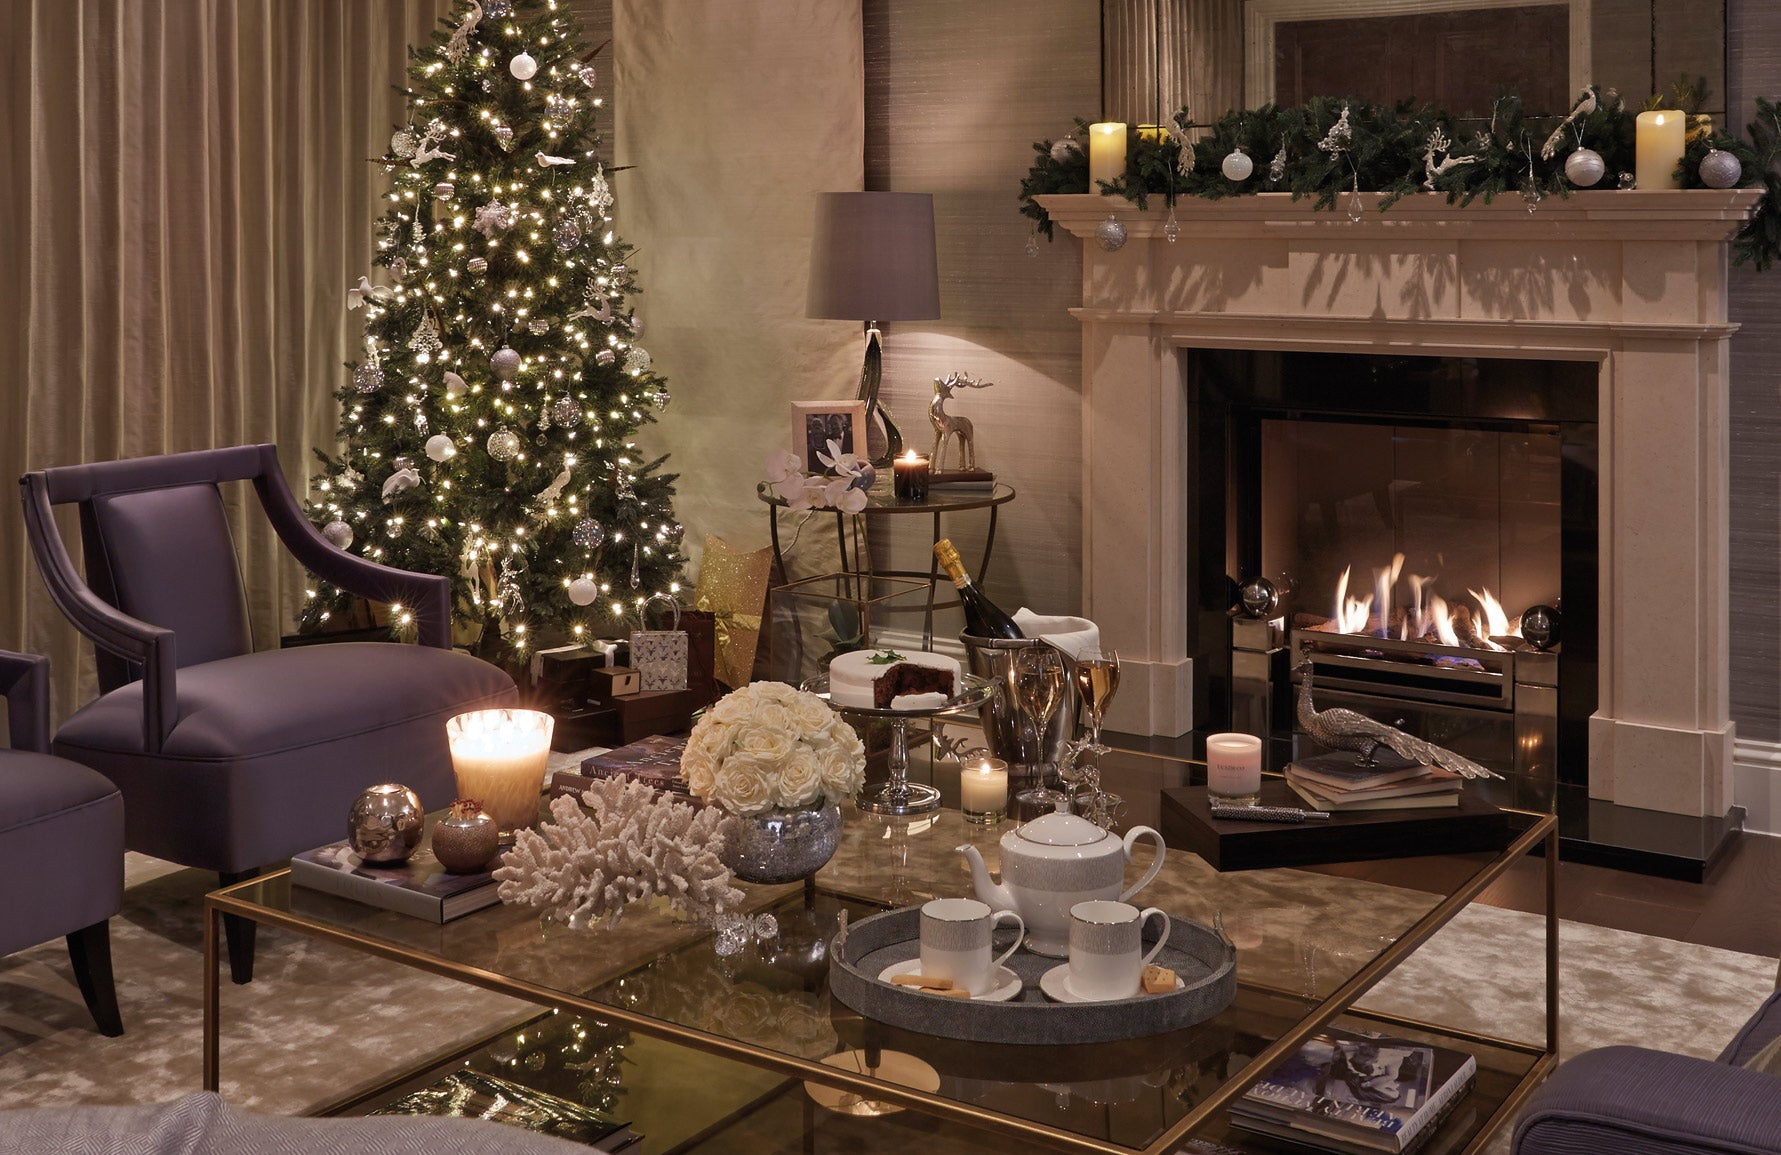 Christmas Decorating Ideas | Contemporary Christmas Decor | Interior by Sophie Paterson | Shop now at LuxDeco.com